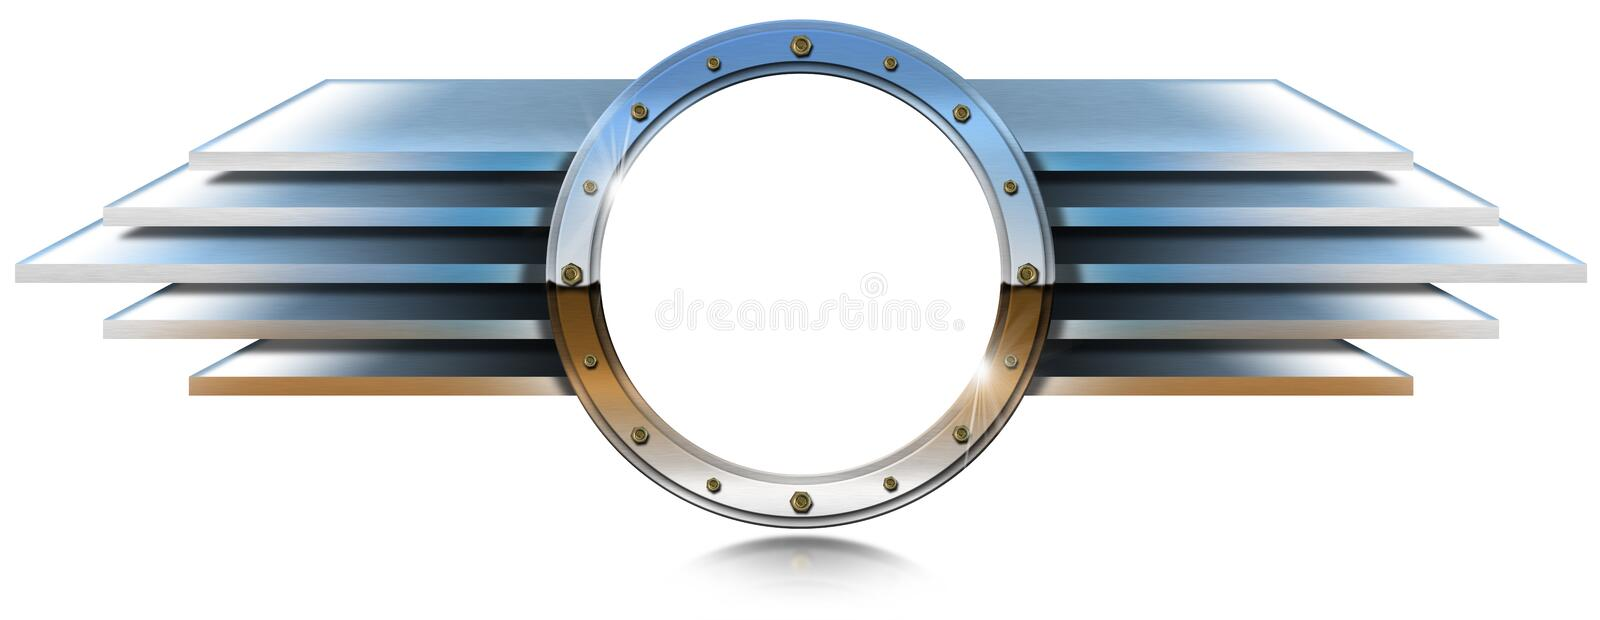 Metallic Porthole with Metal Wings stock illustration